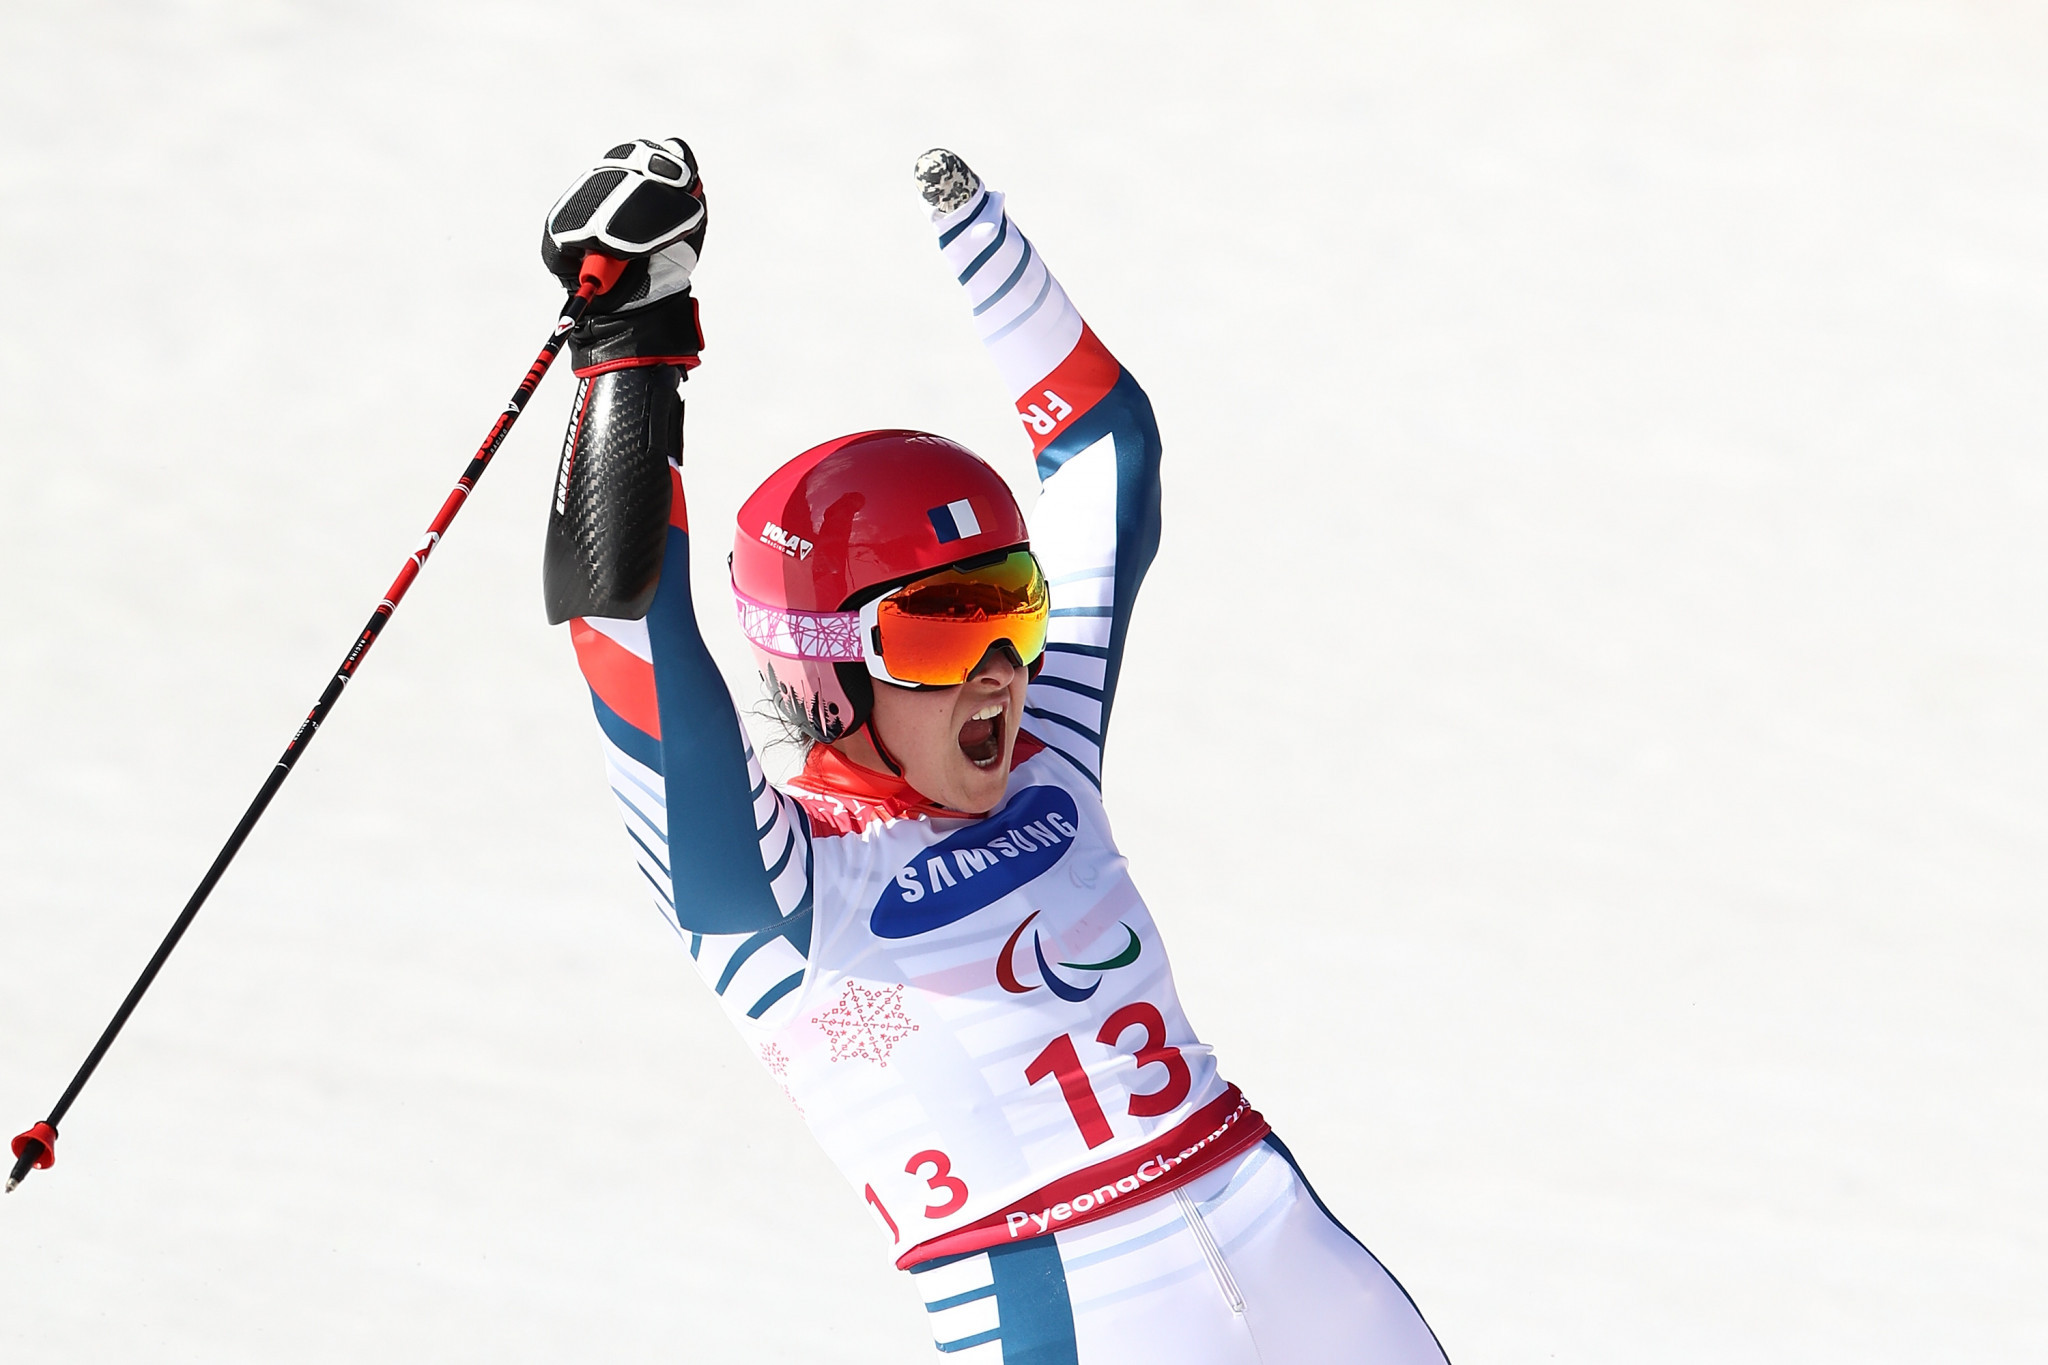 Brilliant birthday for Bochet at World Para Alpine Skiing World Cup